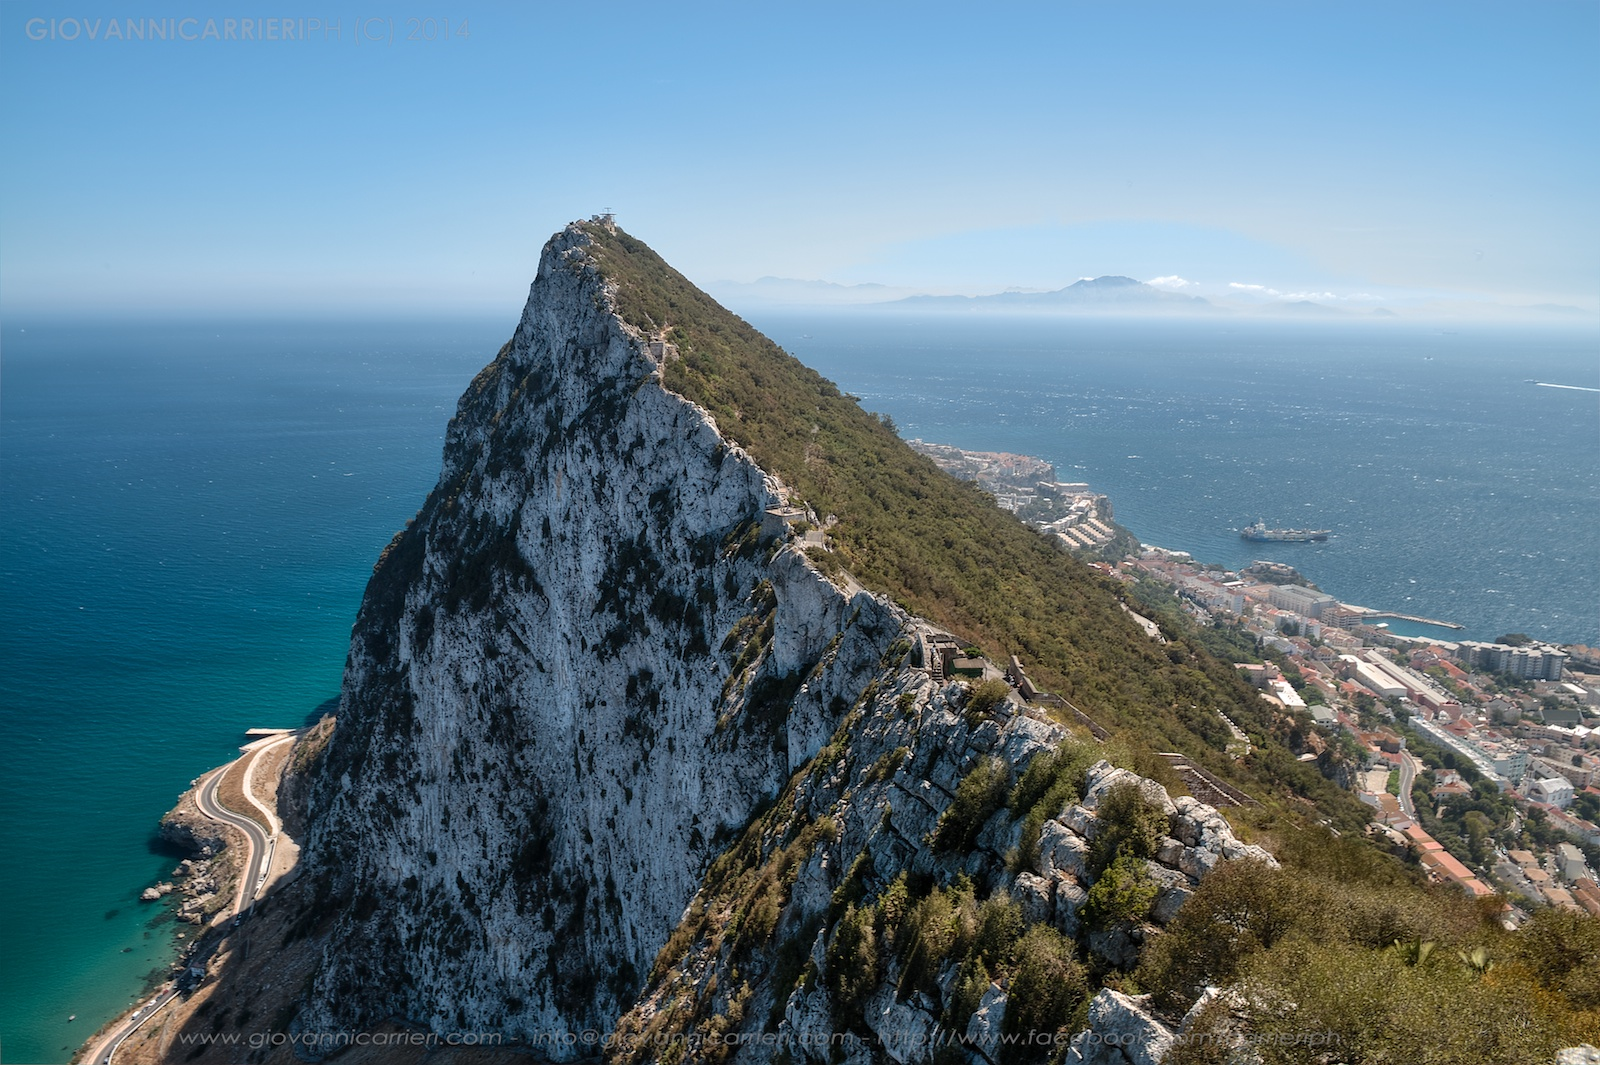 The Rock of Gibraltar and the mountains of Africa. Between the Mediterranean Sea and the Atlantic Ocean